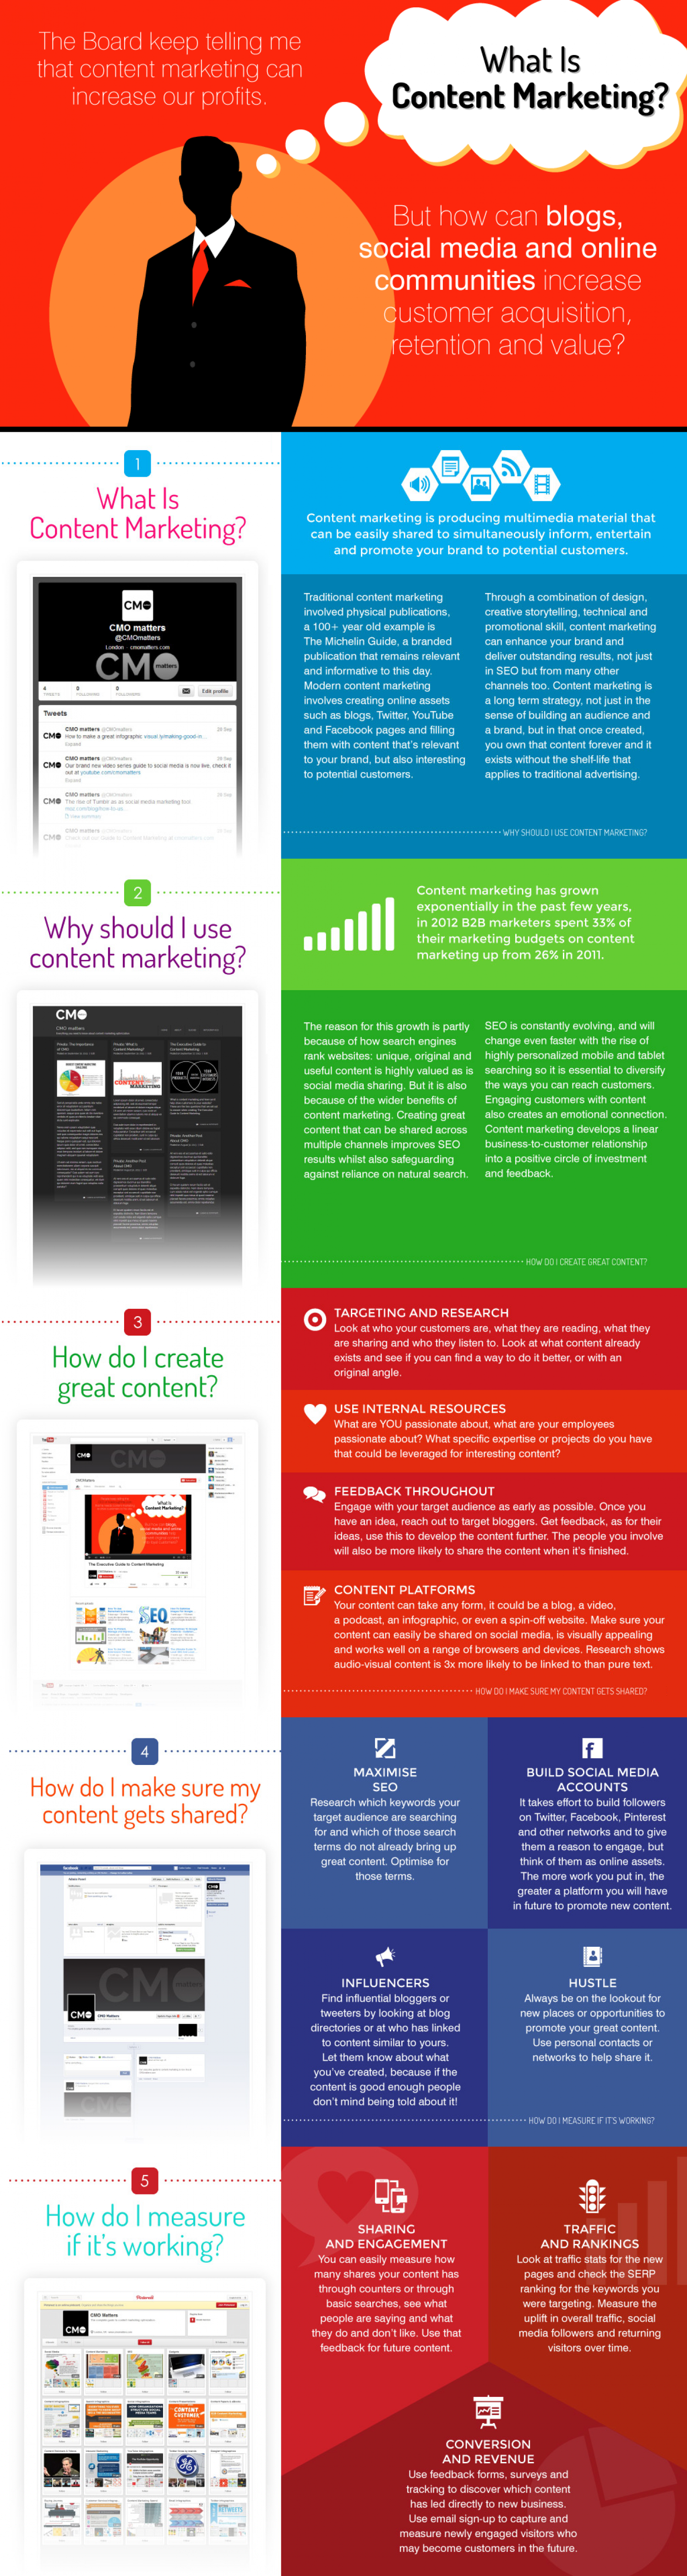 What is Content Marketing? Infographic